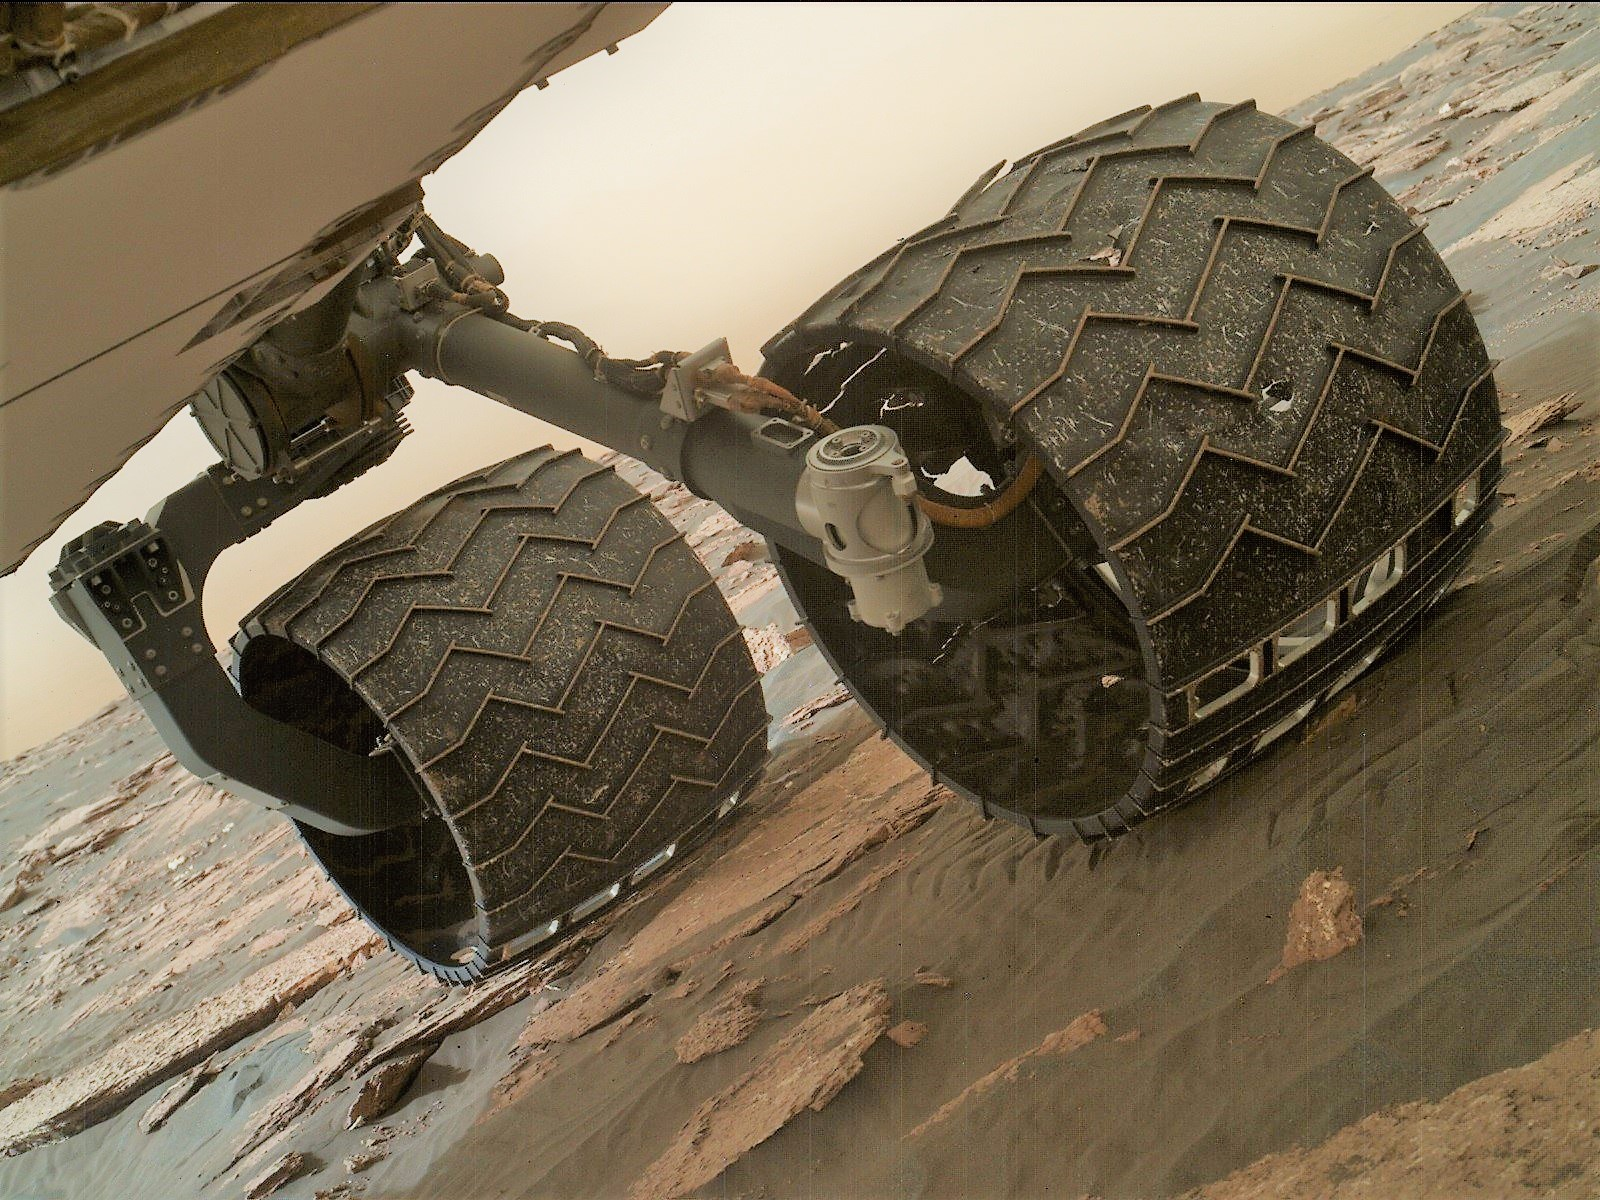 Wheel treads break on Curiosity rover - SpaceFlight Insider